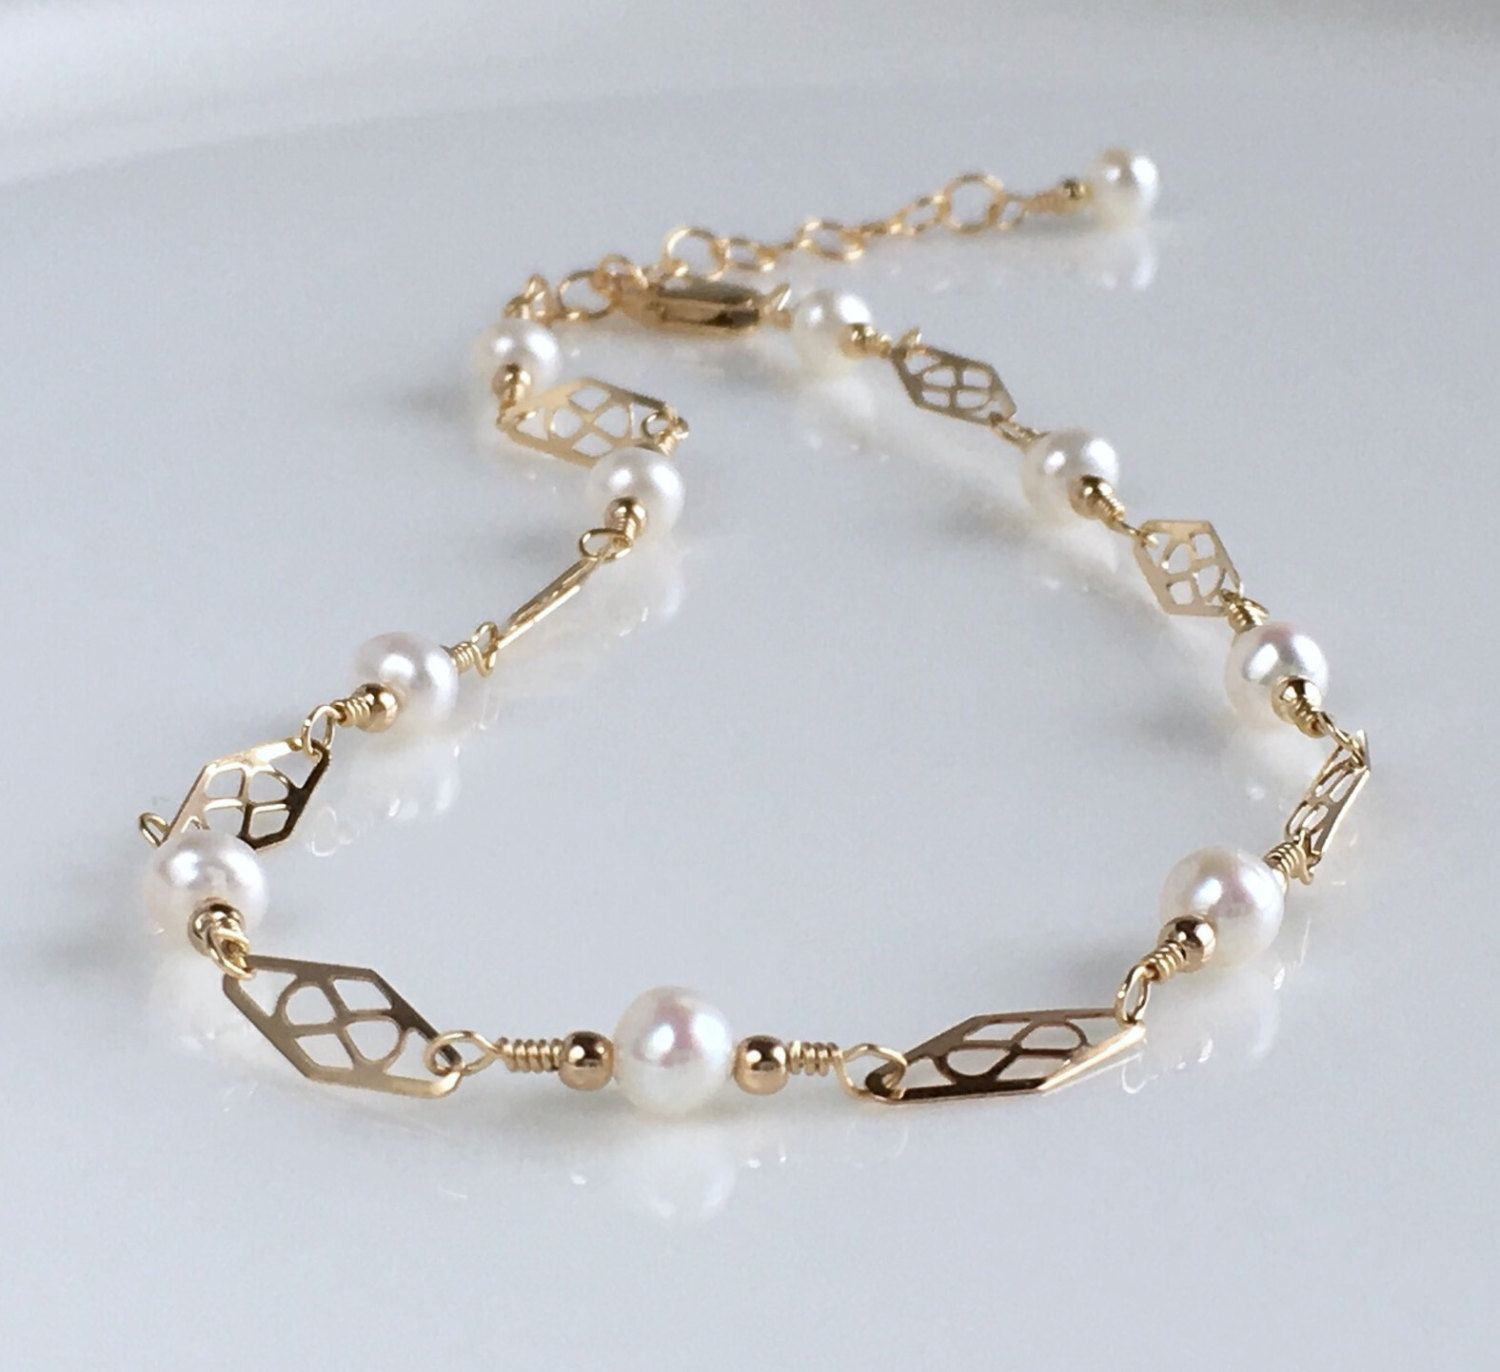 long kitsinian grams chain white italian ankle is gold pin bracelet anklet this